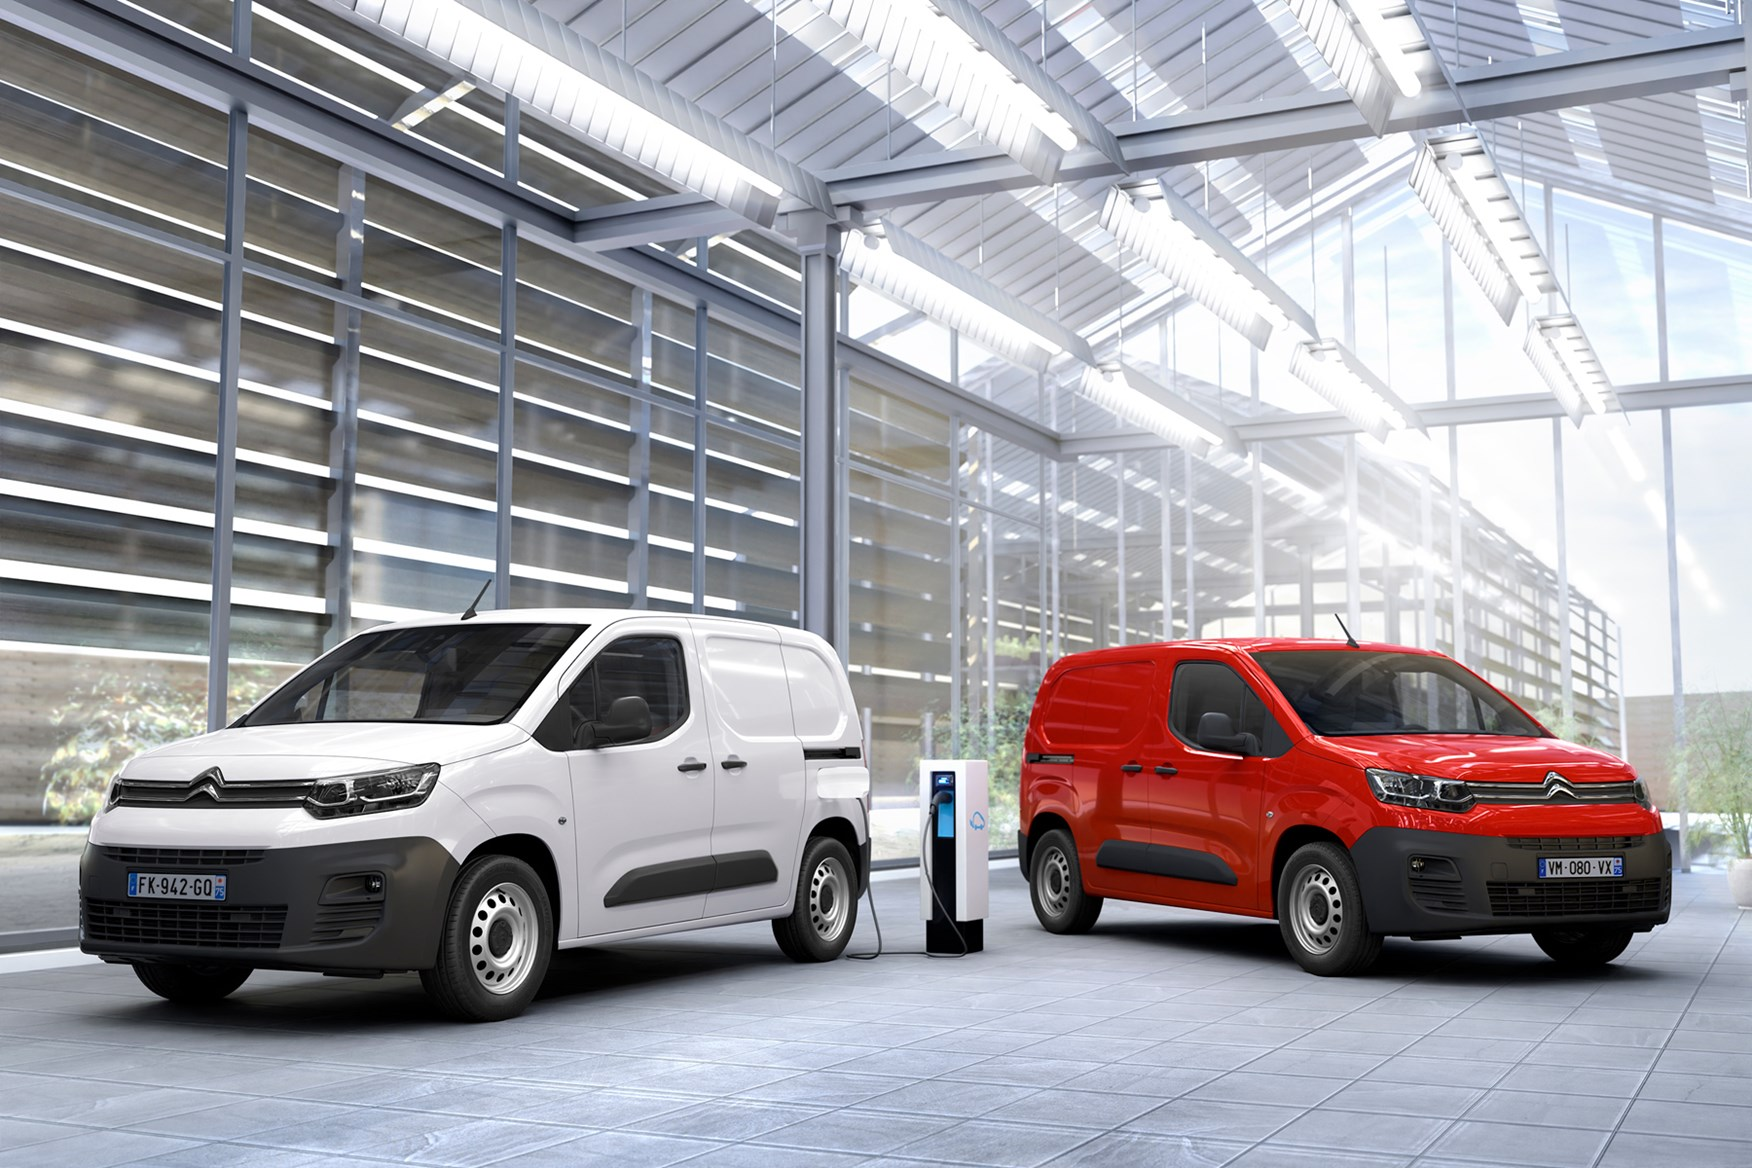 Peugeot e-Partner Award Electric Utility from € 30,600 Excl